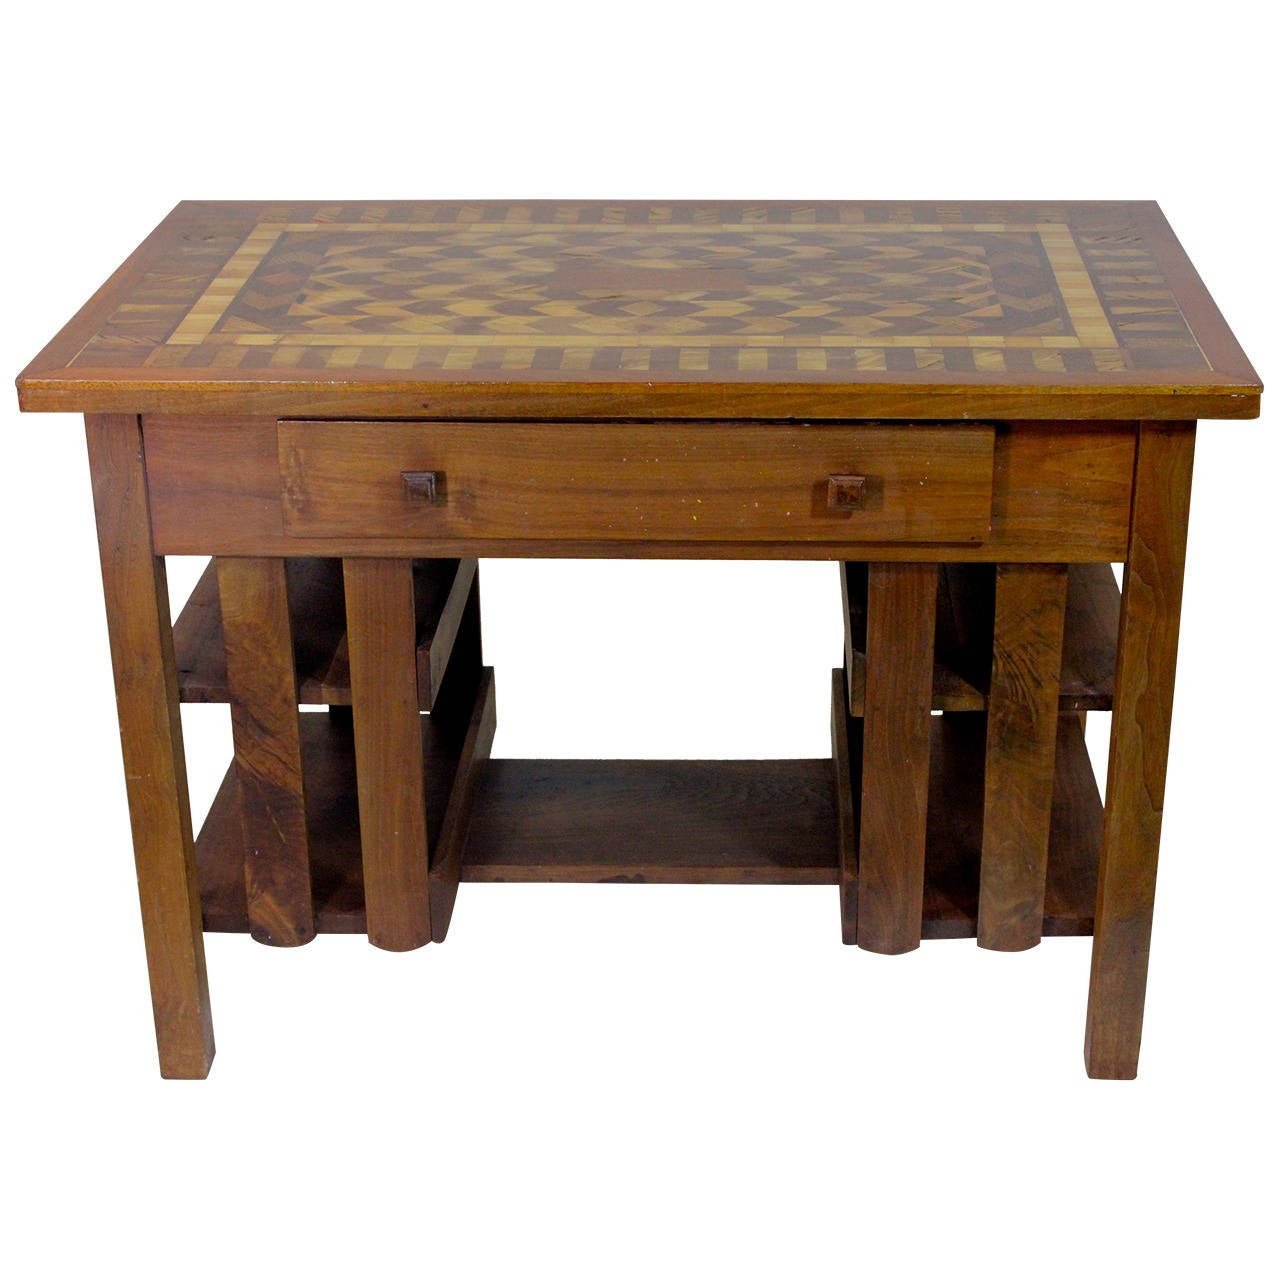 Early th c arts and crafts stickley mission style desk